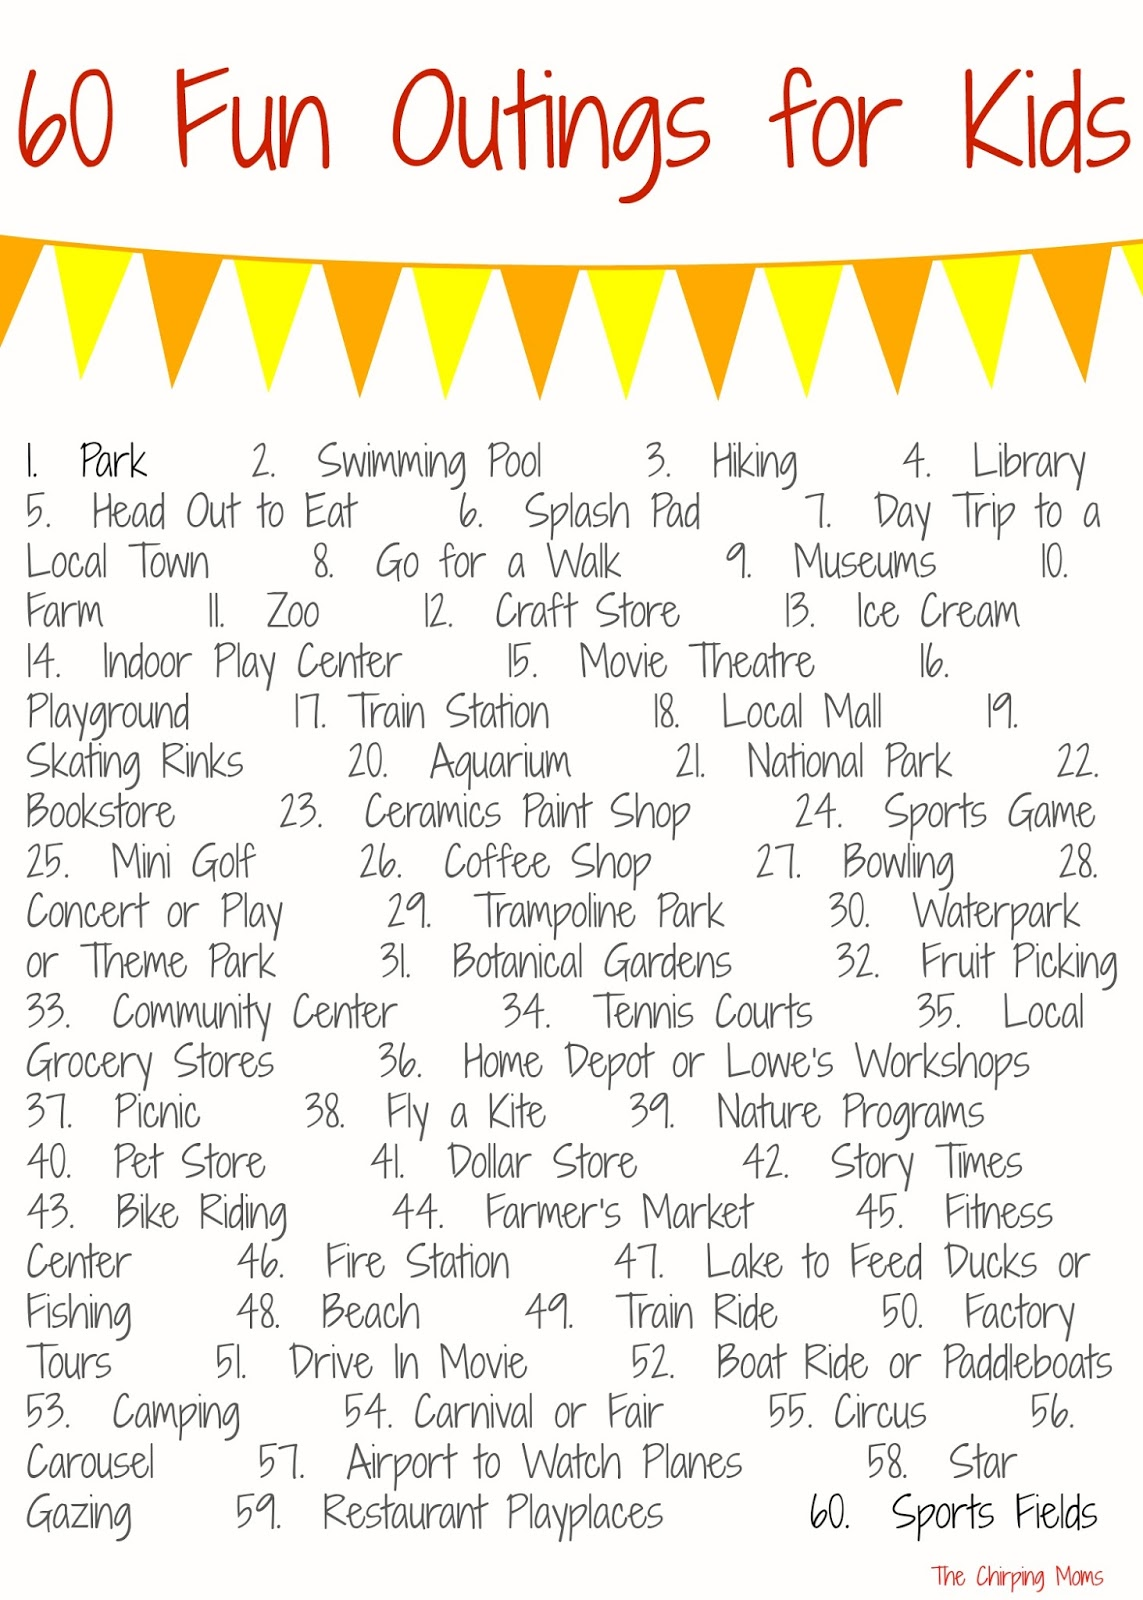 places fun summer activities moms outings thechirpingmoms toddler chirping indoor play days